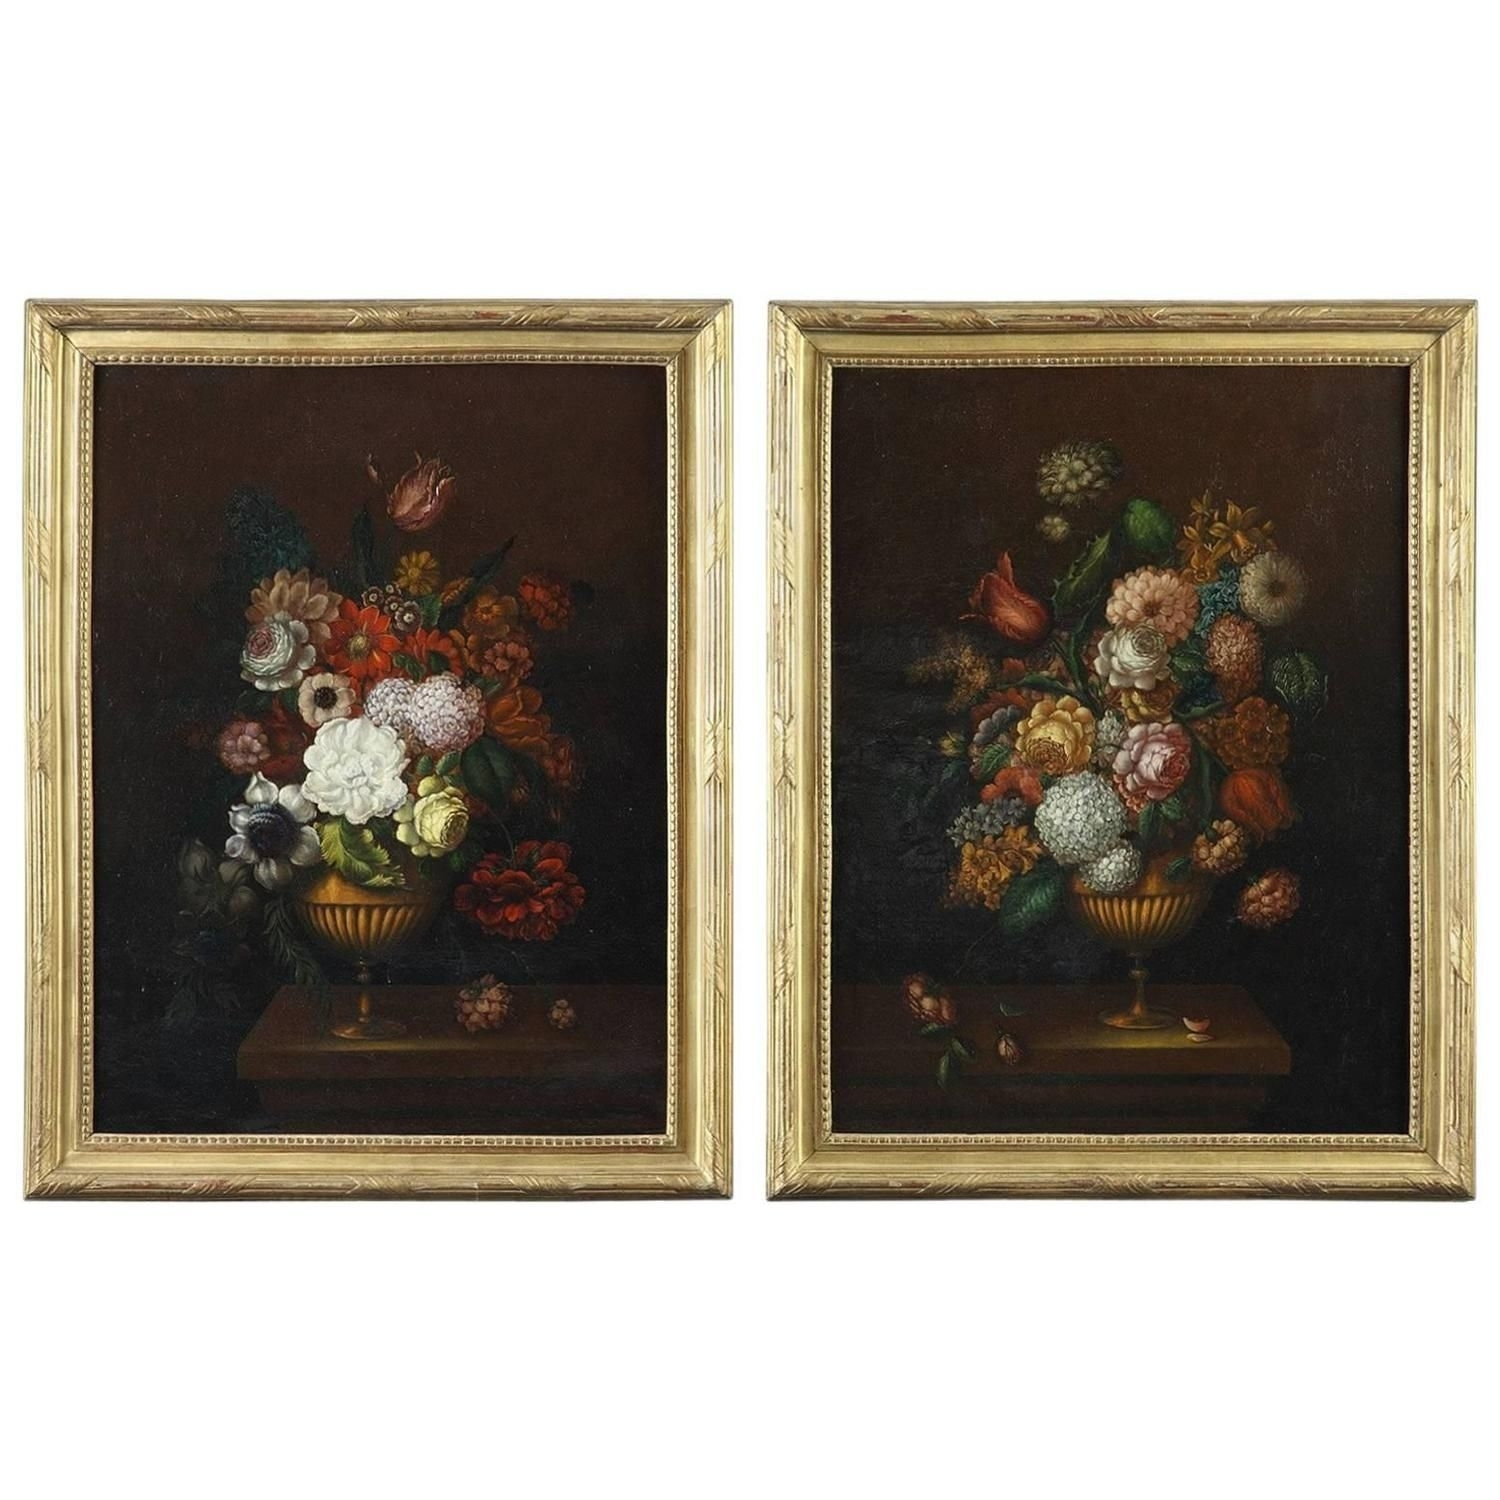 Pair Of Oil On Canvas Paintings, Flower Bouquets From 19th Century Pertaining To 2017 Canvas Wall Art Pairs (Gallery 15 of 15)